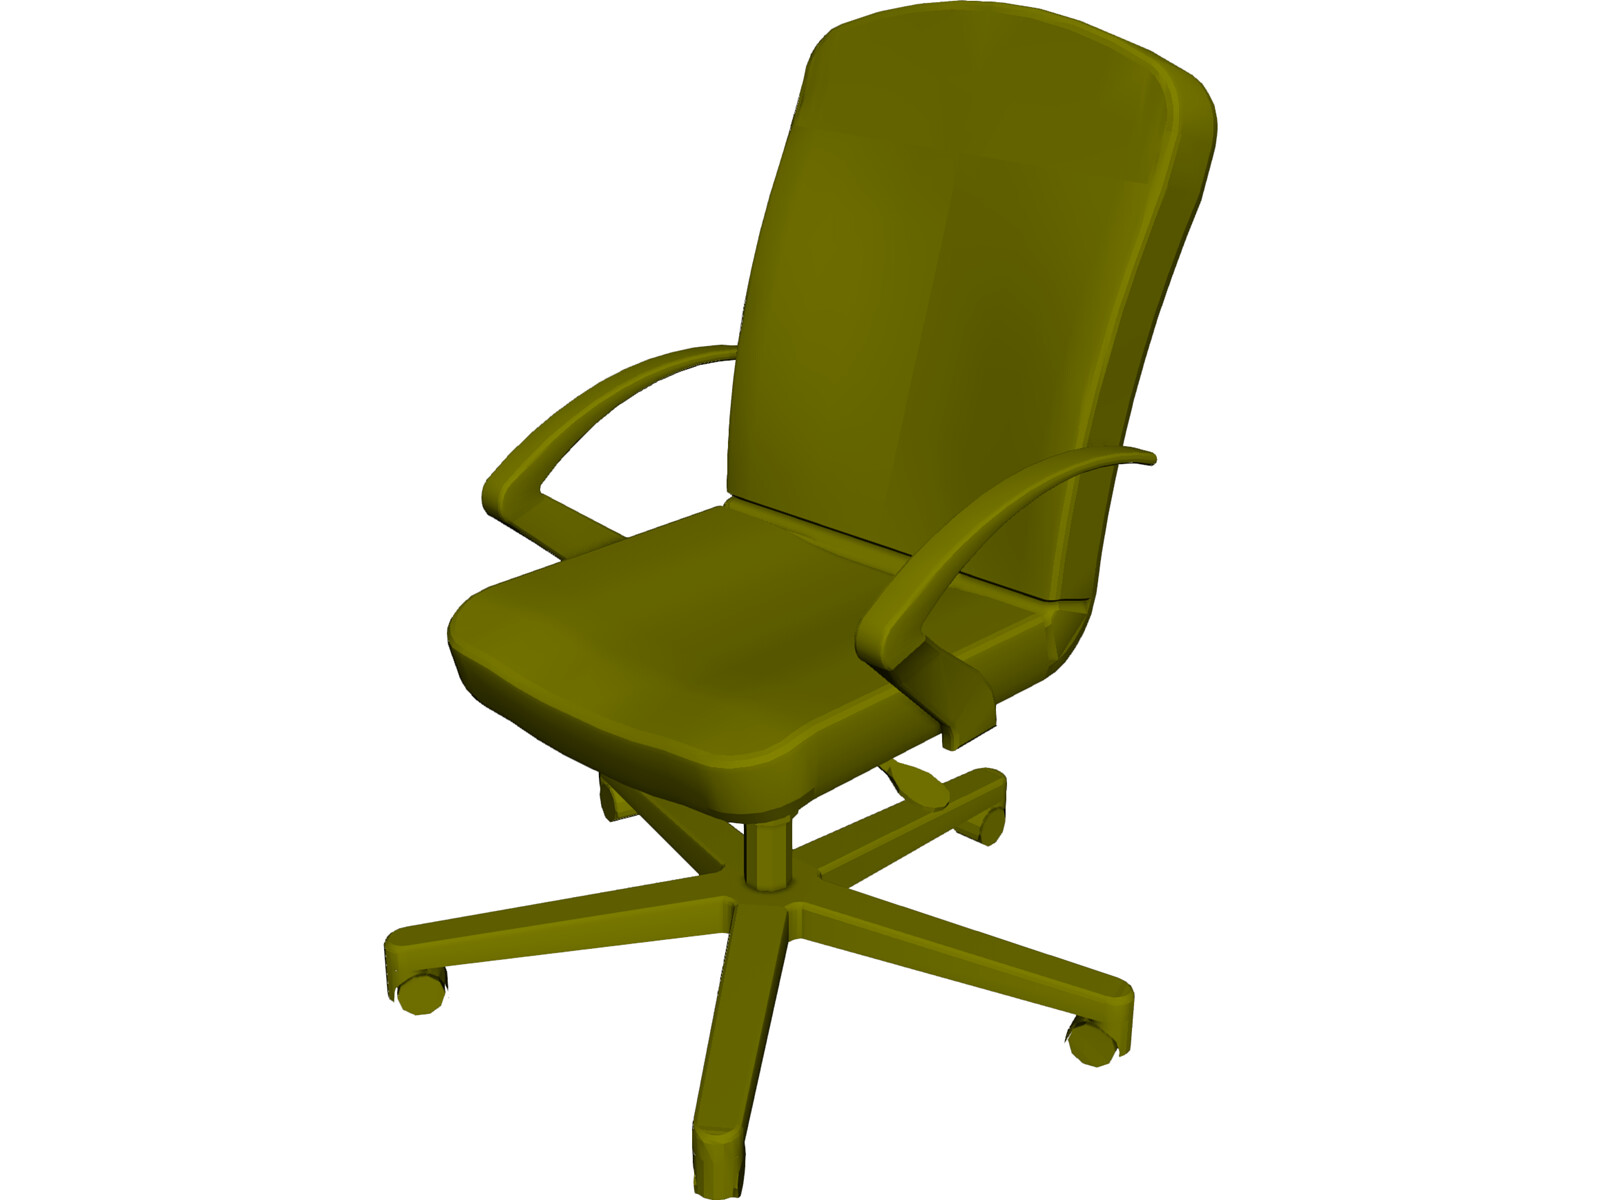 Allsteel Chair 10 3D Model